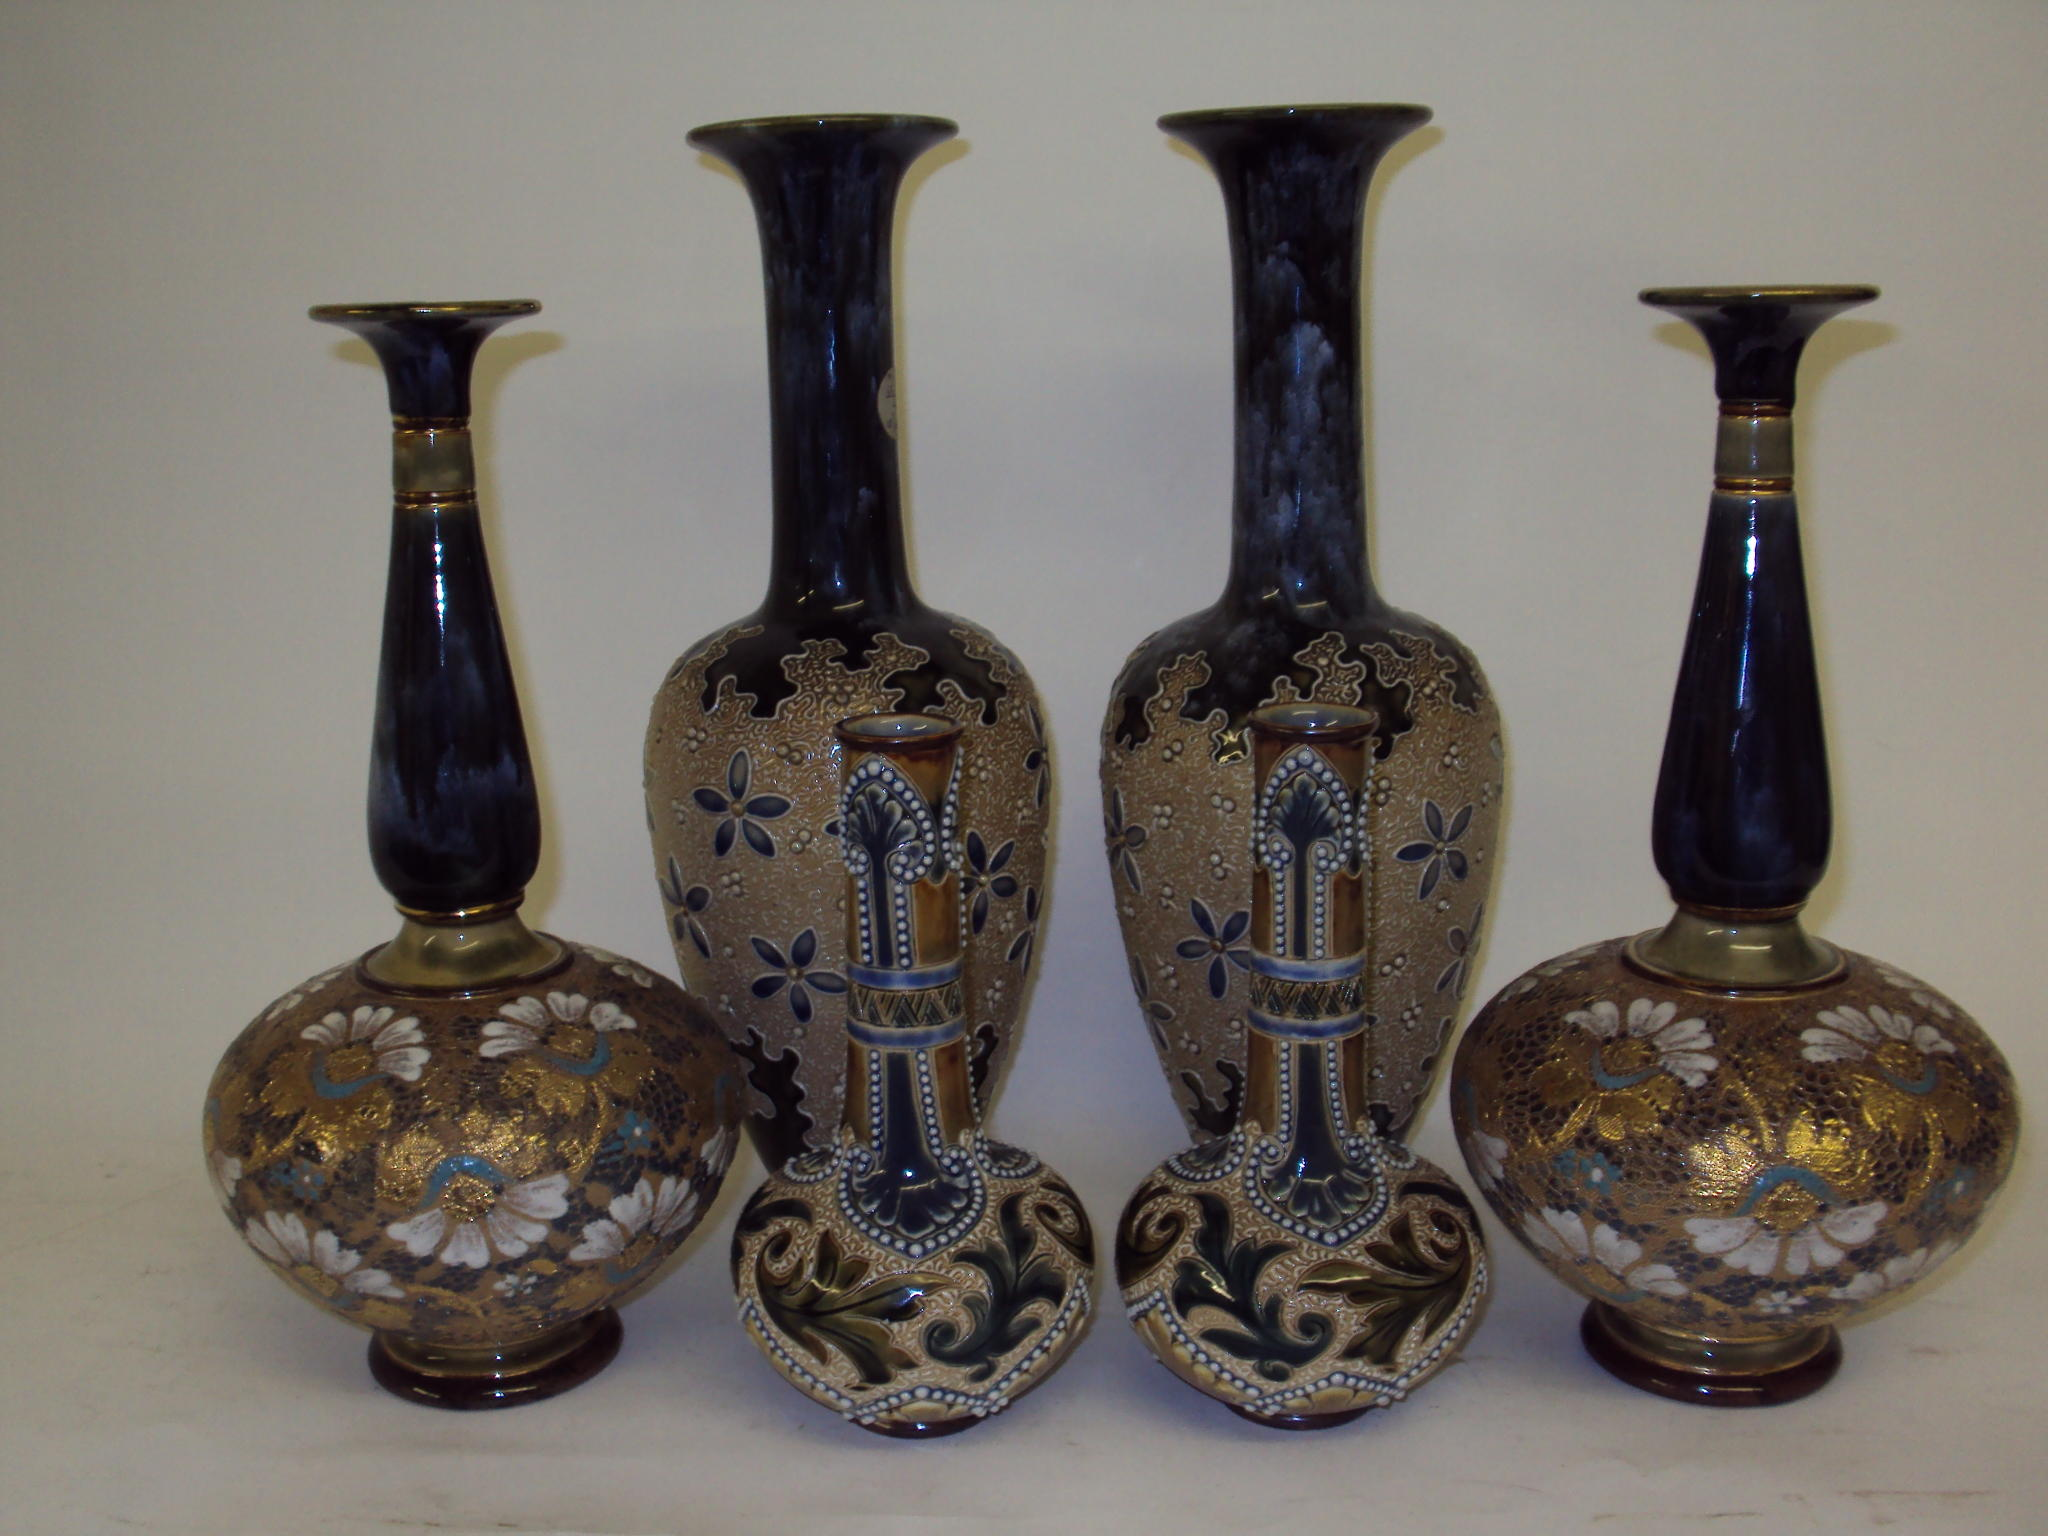 Two pairs of Doulton Lambeth vases and a pair of Royal Doulton Slaters...